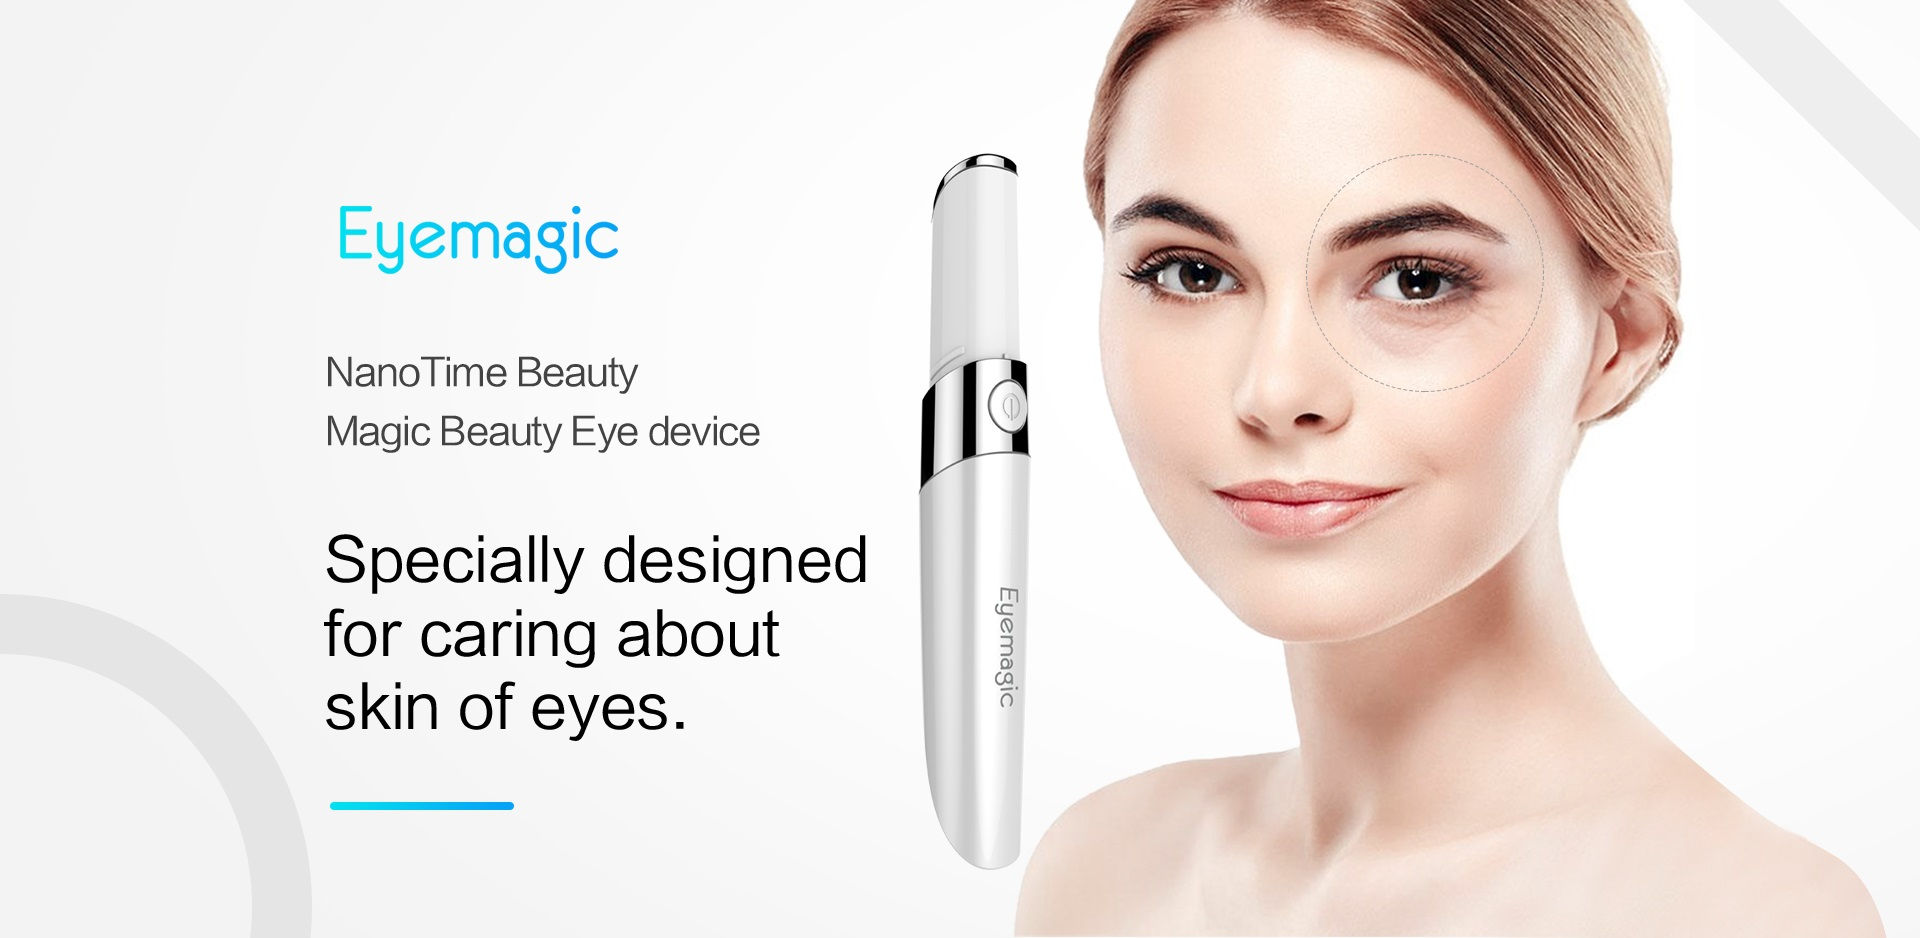 nanotime beauty eyemagic devies